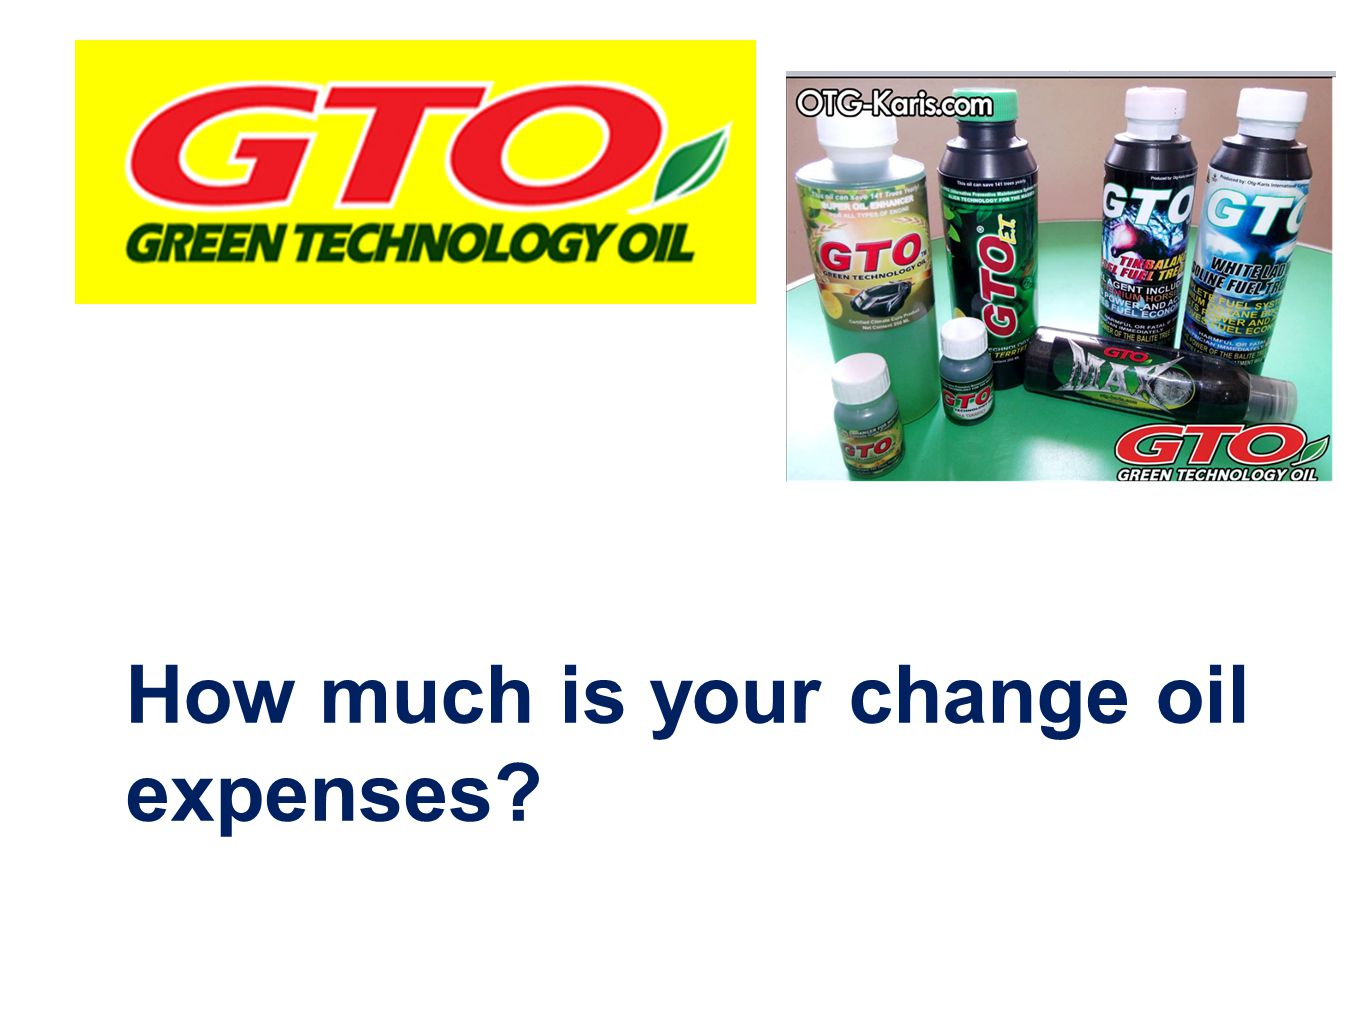 How much is your change oil expenses